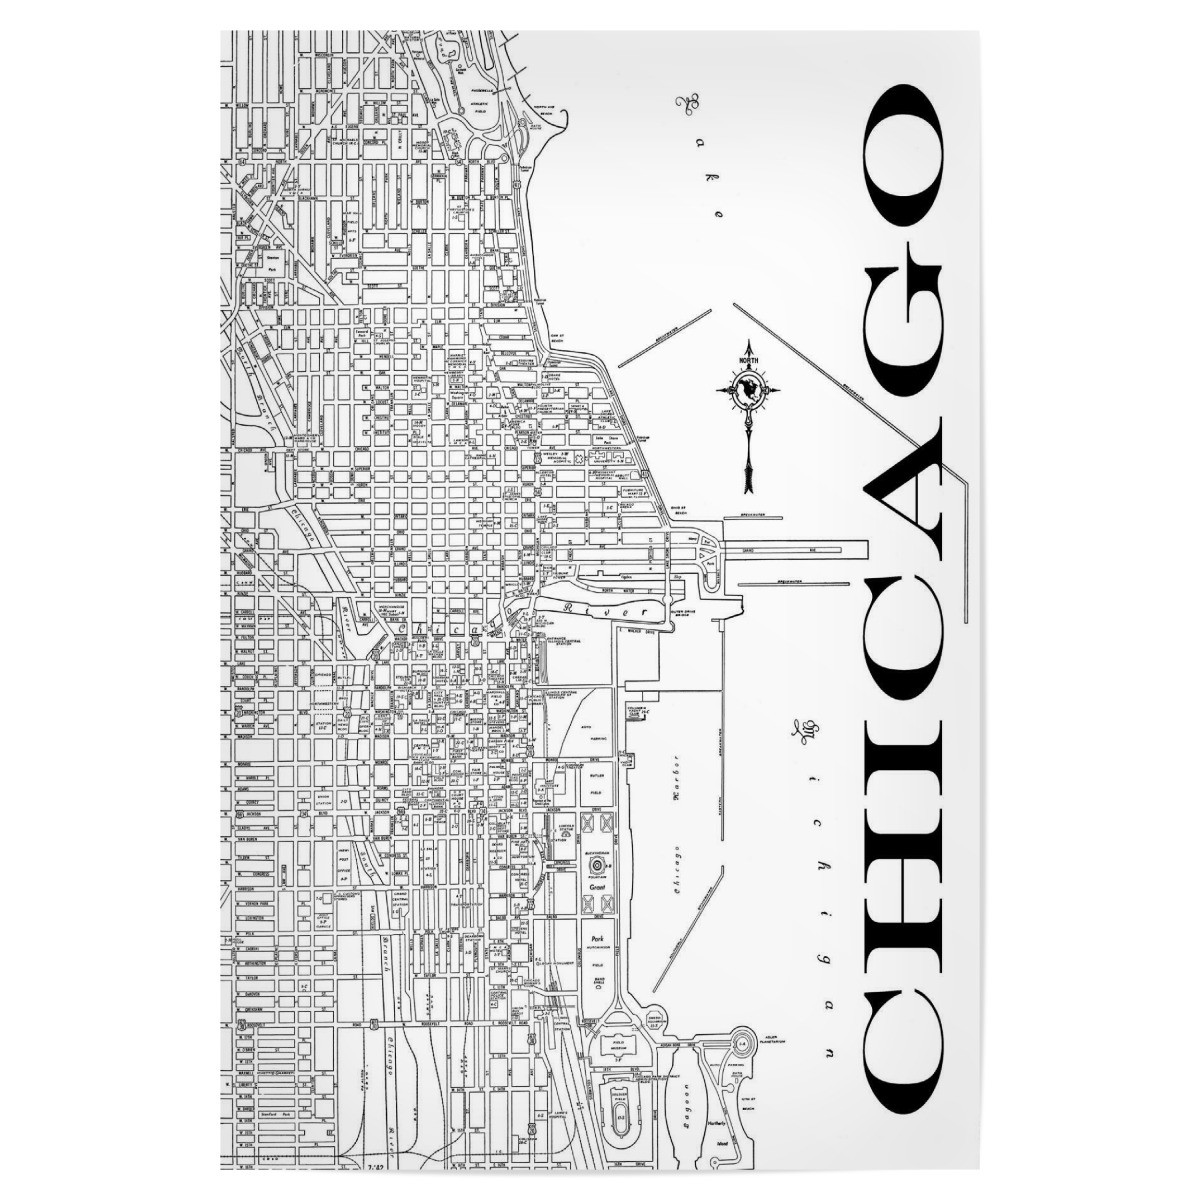 Retro Map Chicago Black als Poster bei artboxONE kaufen on